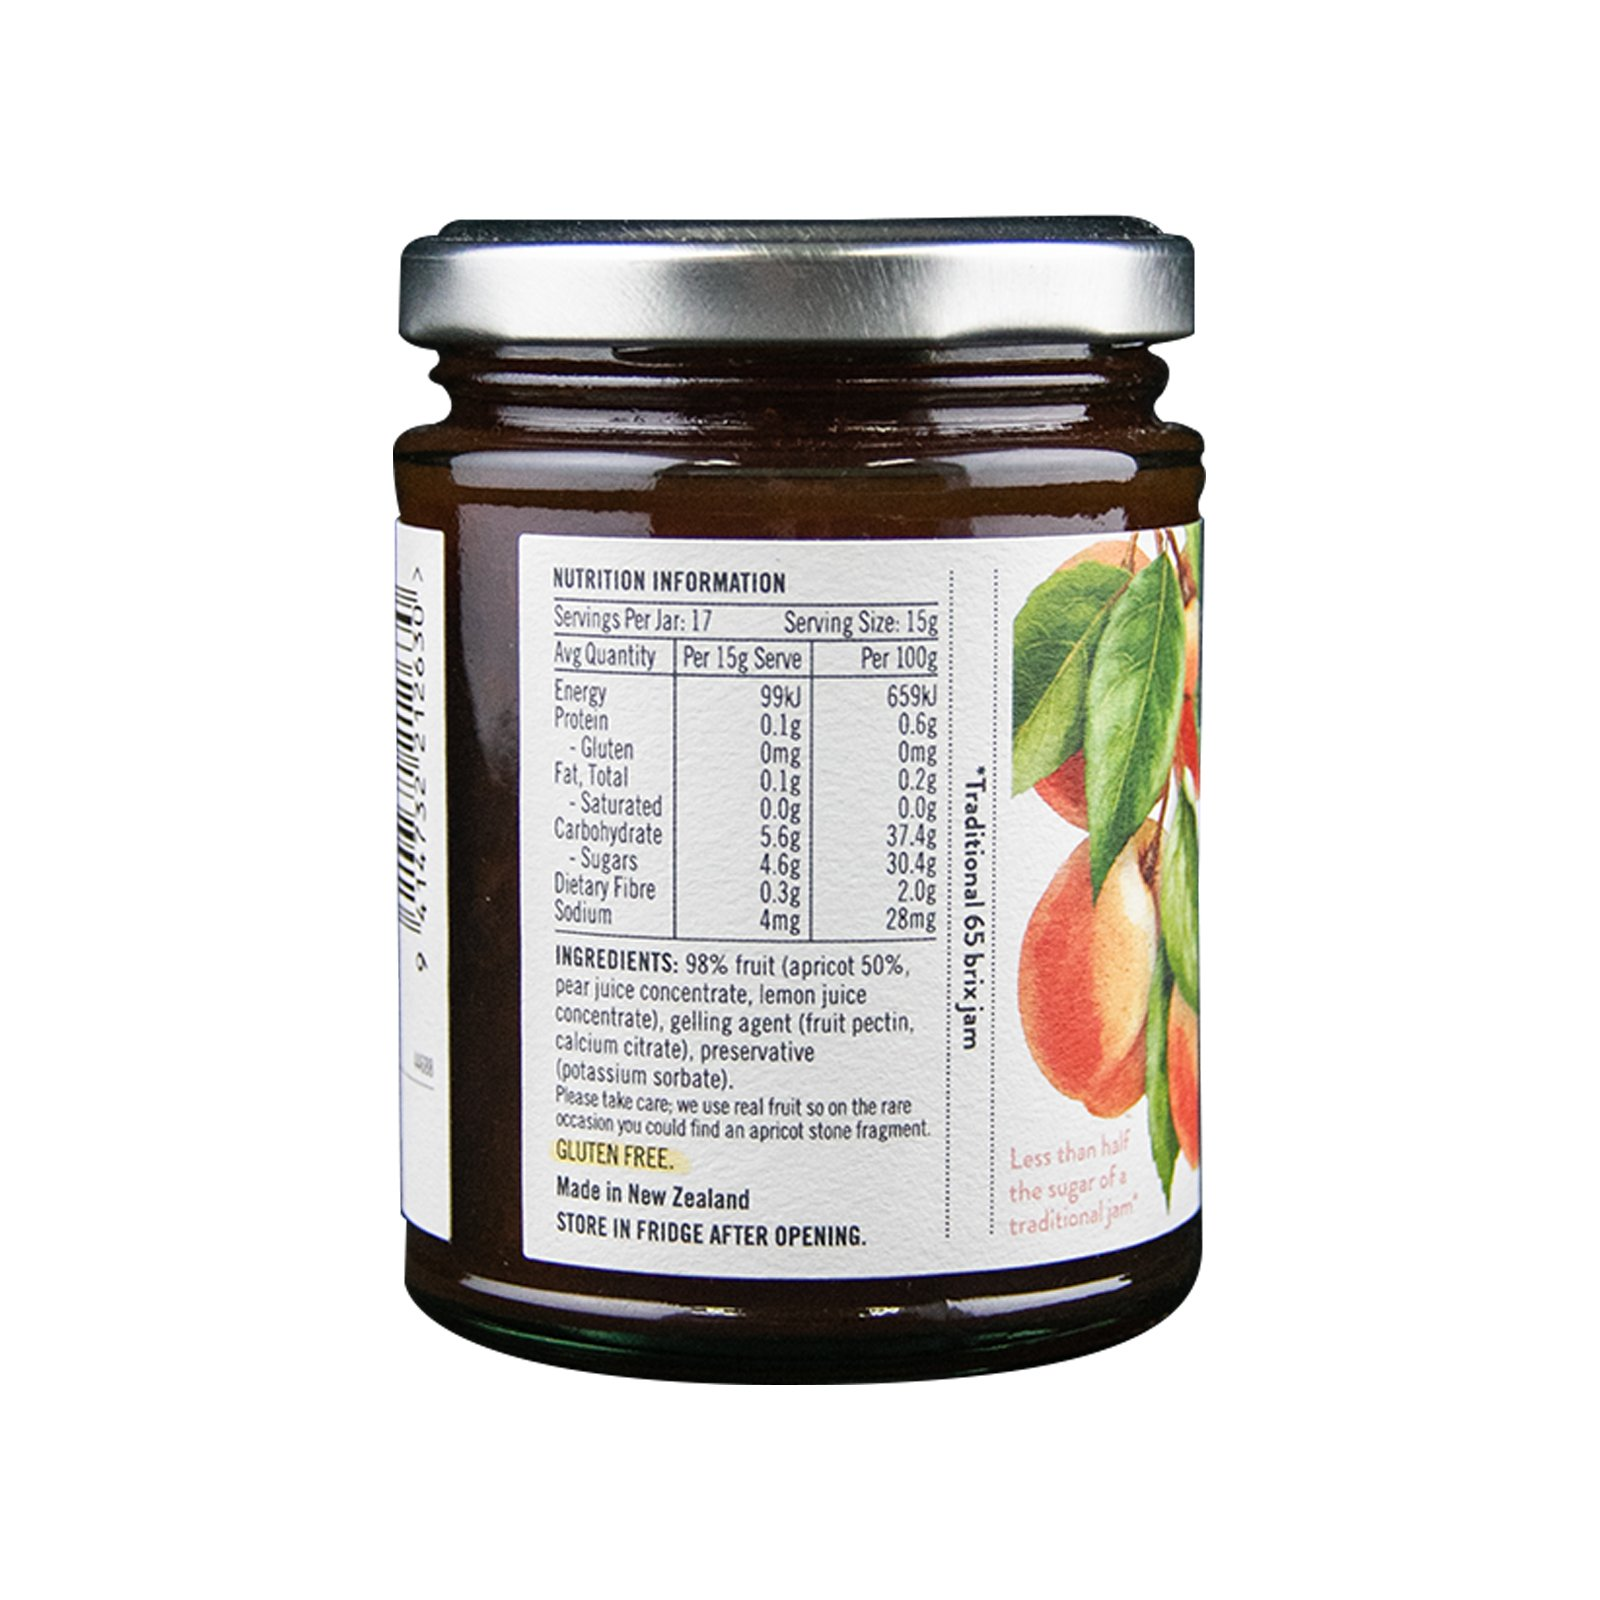 BARKER'S OF GERALDINE APRICOT SPREADABLE FRUIT 260GM/BTL